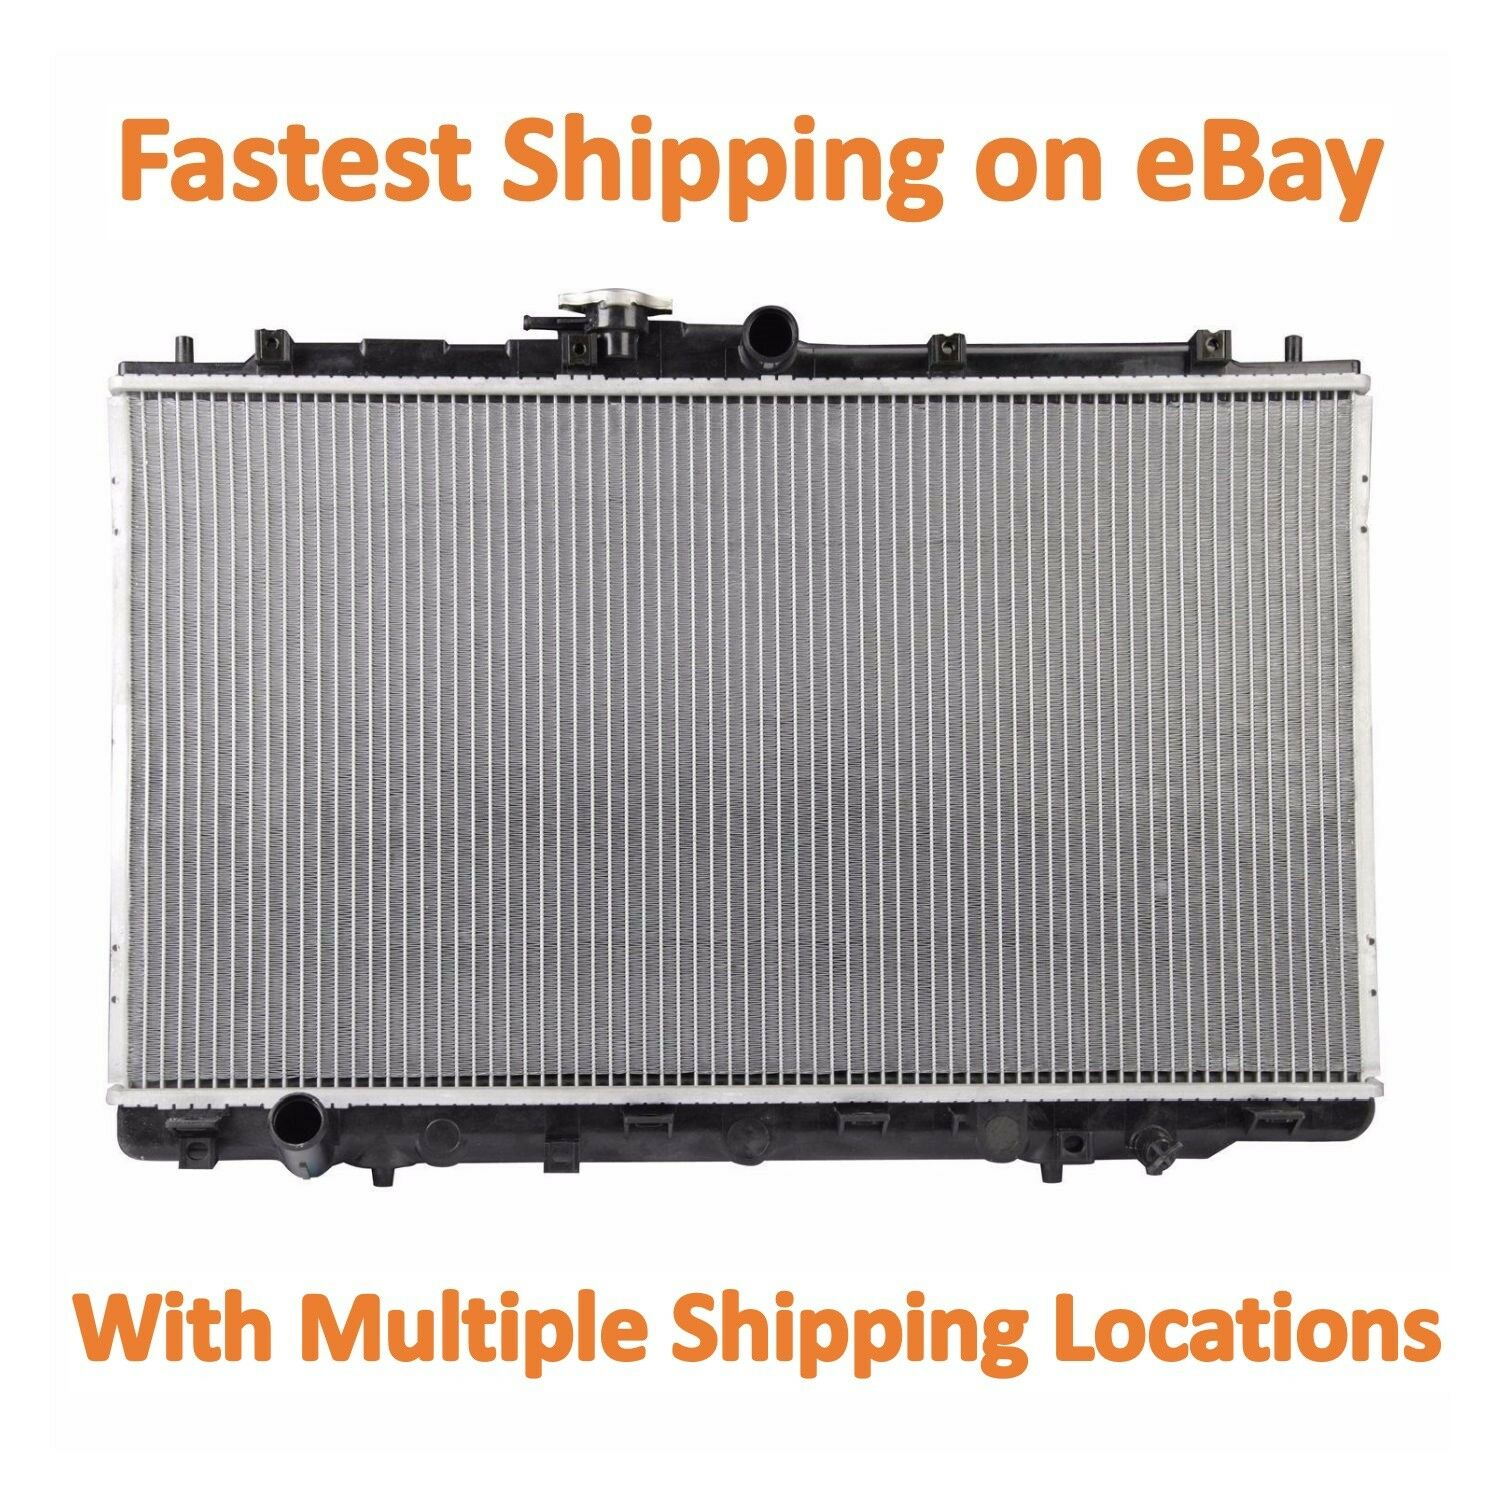 New Radiator 2431 Fits Acura CL 2001-2003 TL 2002-2003 3.2